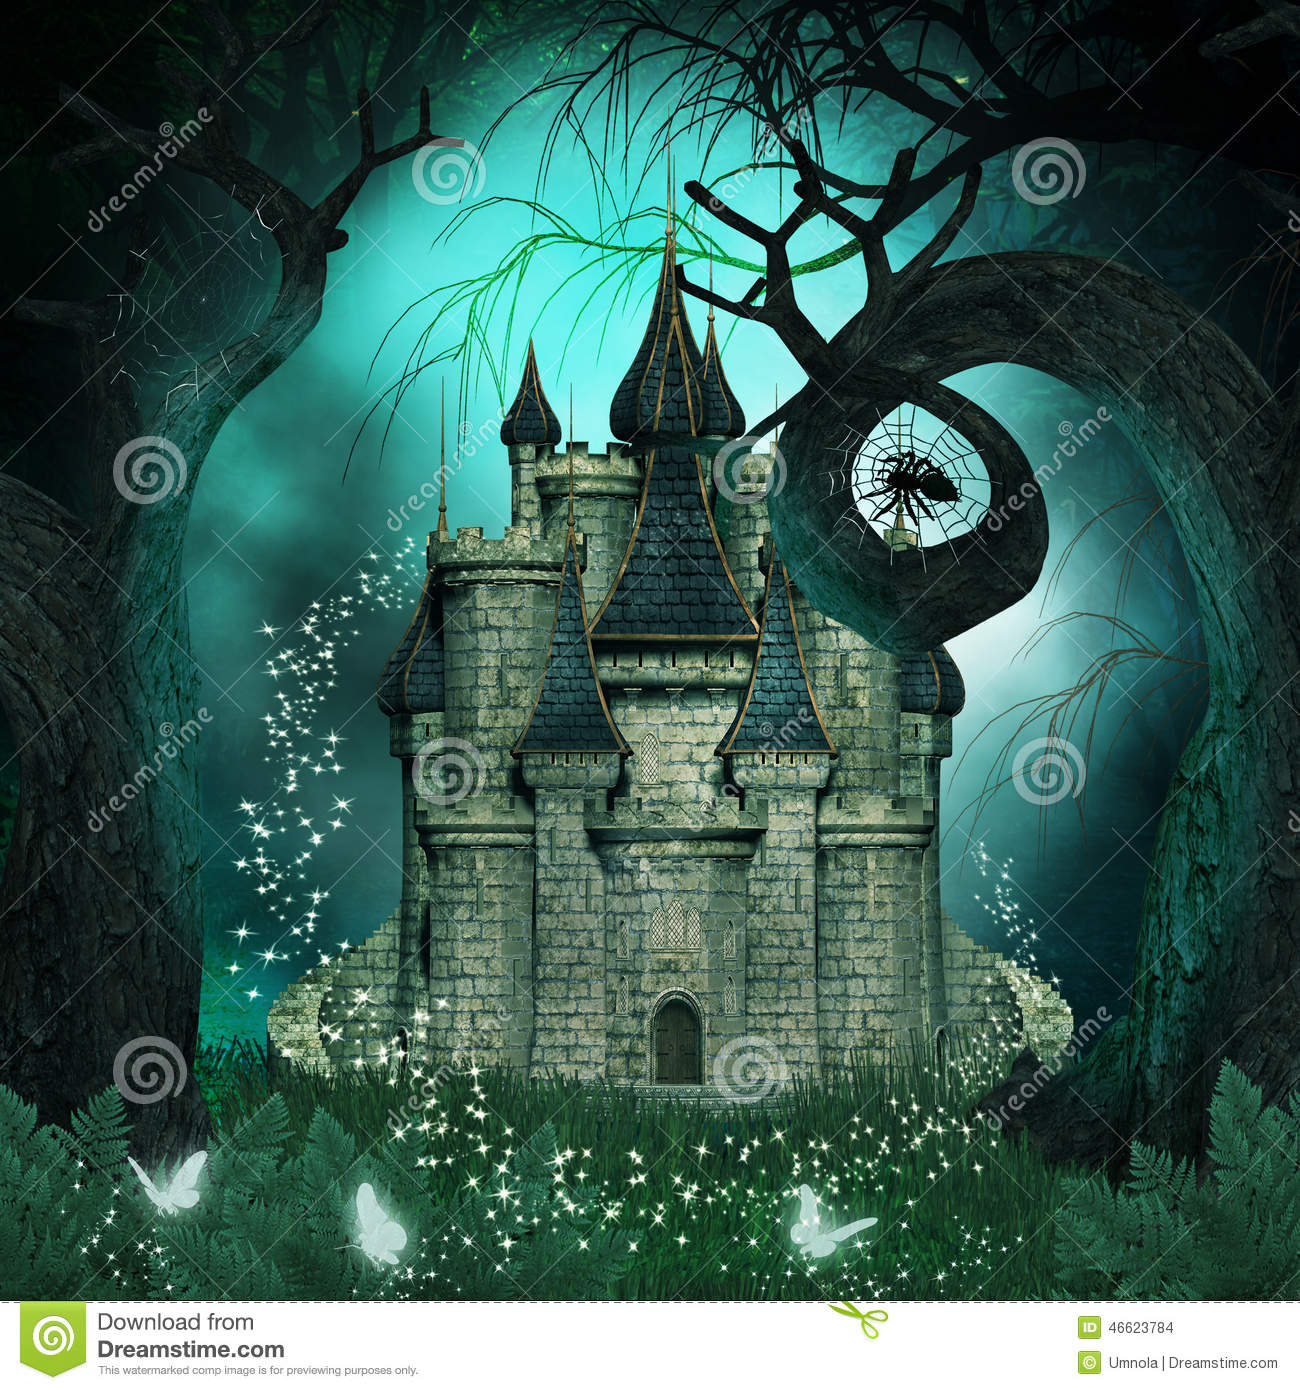 magical background with a fantasy castle and creepy trees